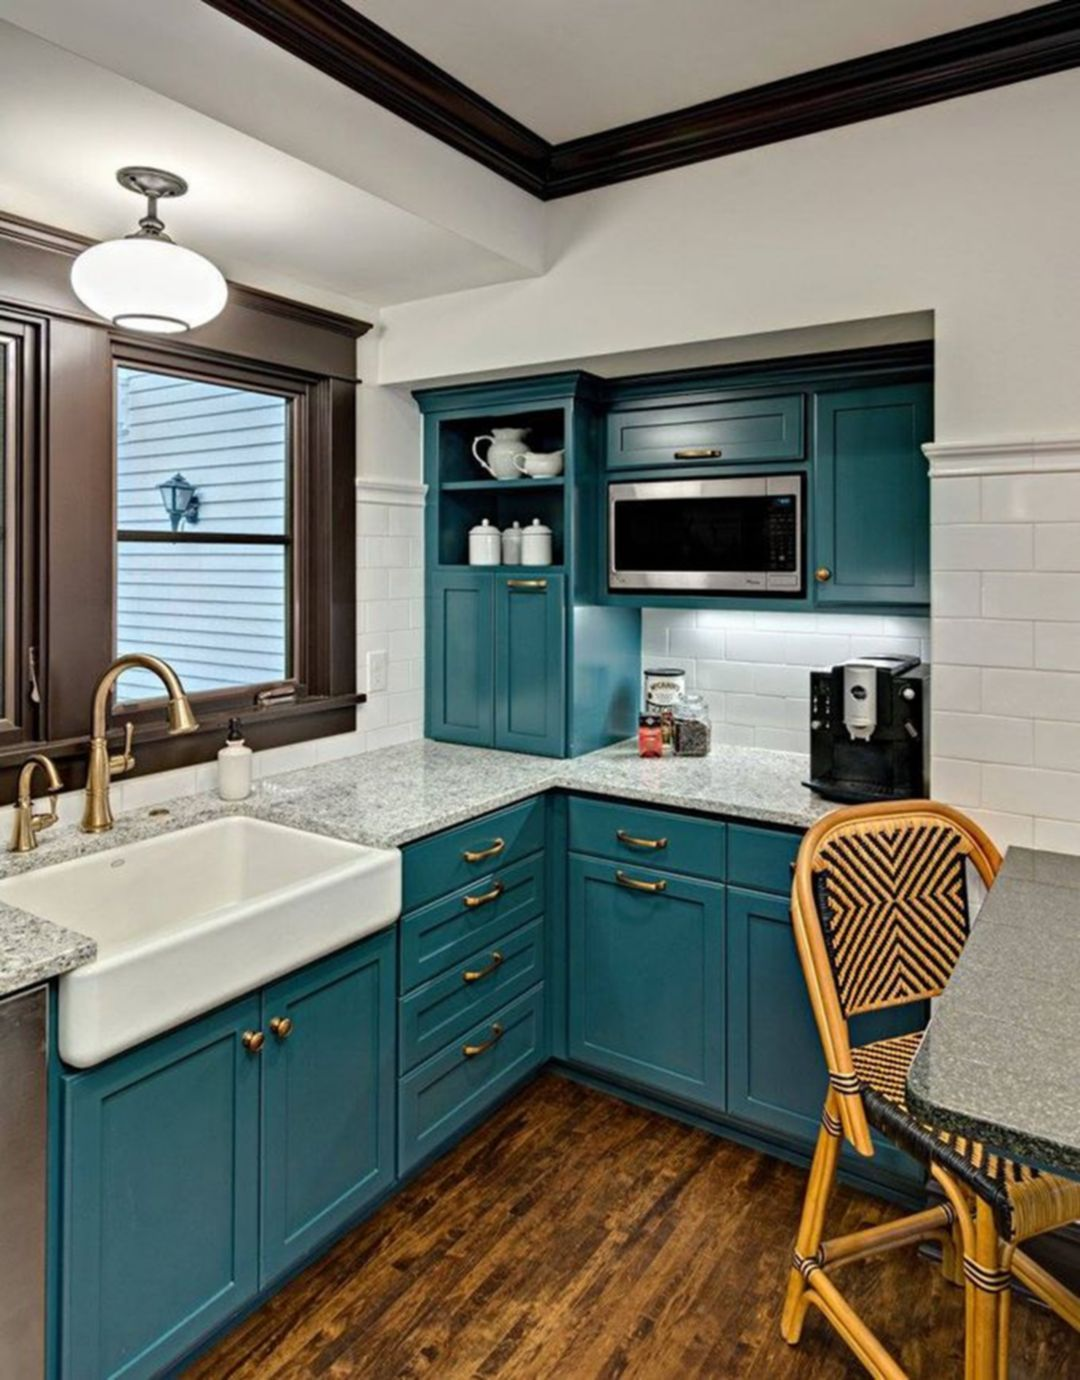 10 Gorgeous Grey And Turquoise Kitchen Color Scheme images